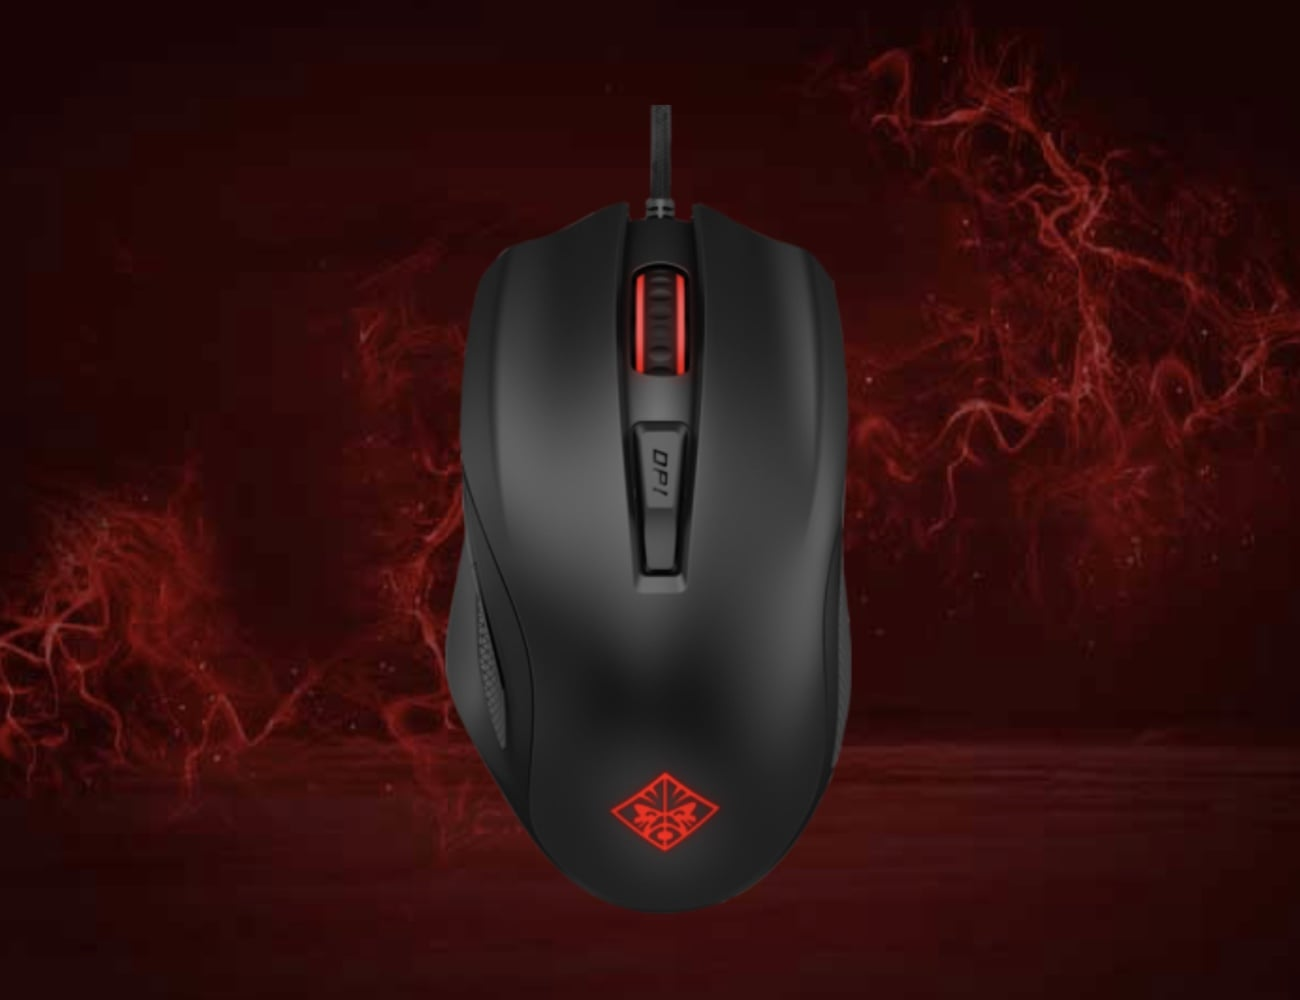 Want better precision? Upgrade to the new HP OMEN gaming mouse